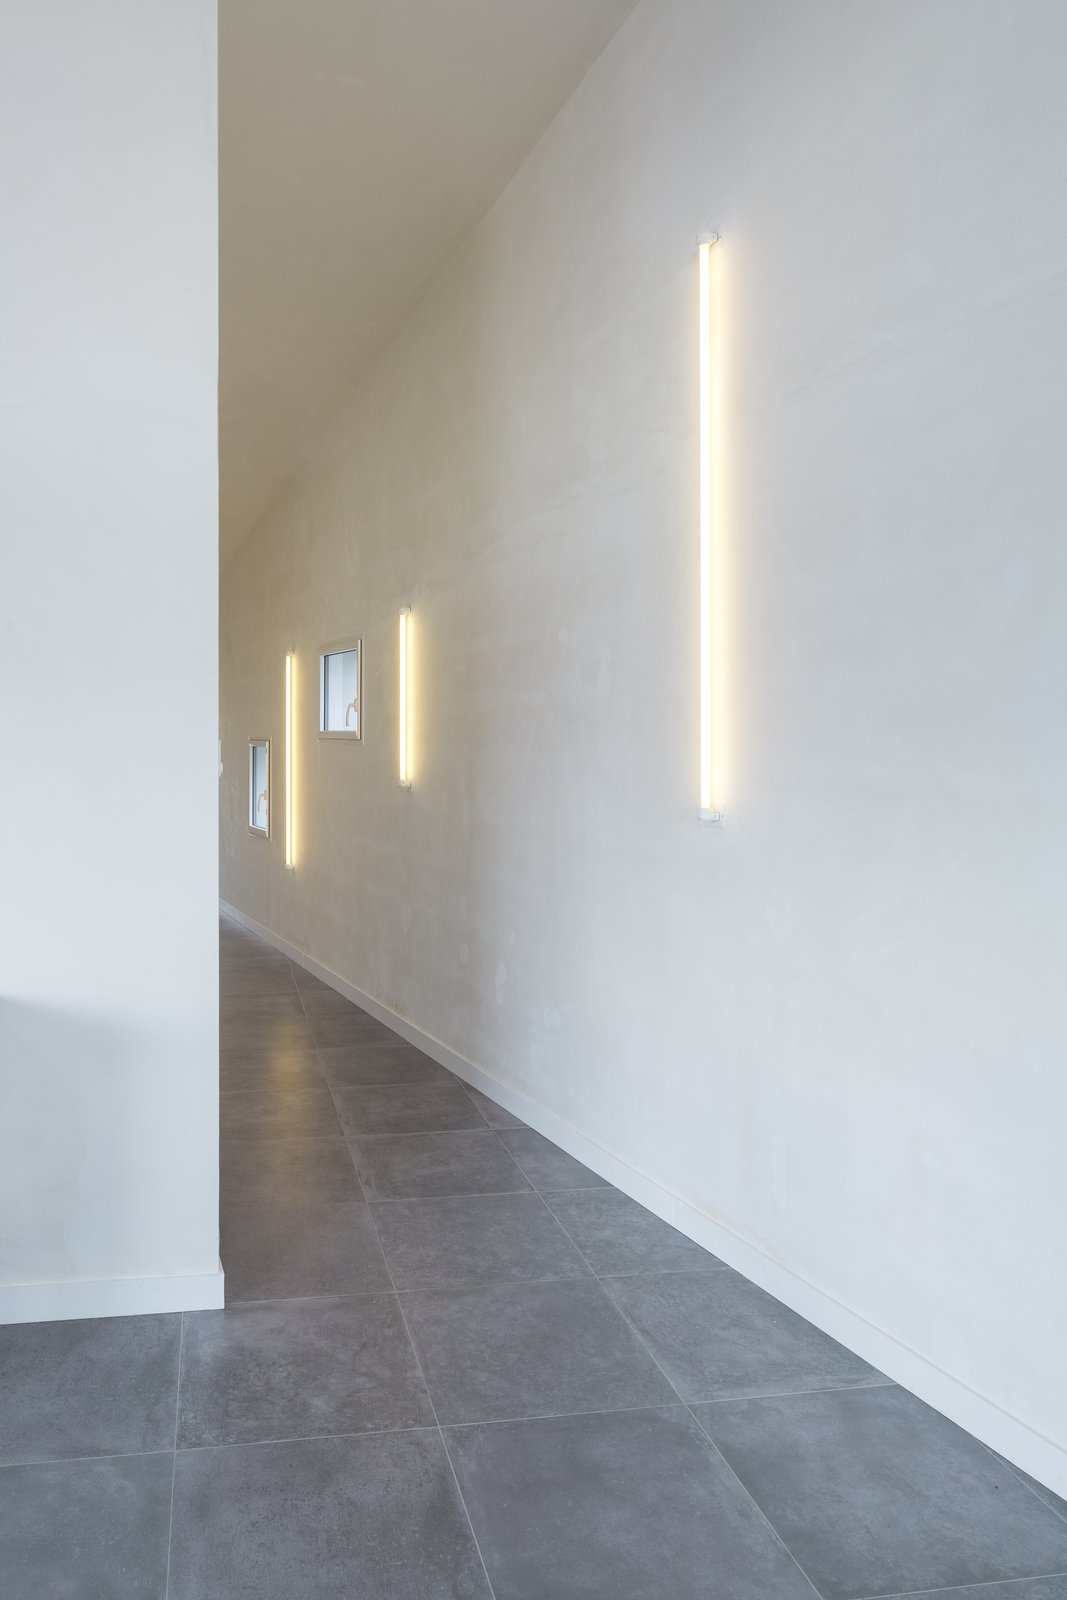 From a constricted entryway without a lot of natural light, the passageway fans upwards towards the landscape. Throughout the home, simple neon lights on unpainted plaster walls produce a warm glow. Explains Alireza Razavi, director of Studio Razavi Architecture,  Photo 2 of 10 in Framing the Landscape and Capturing Light, a Photographer's Home and Studio Echoes His Work